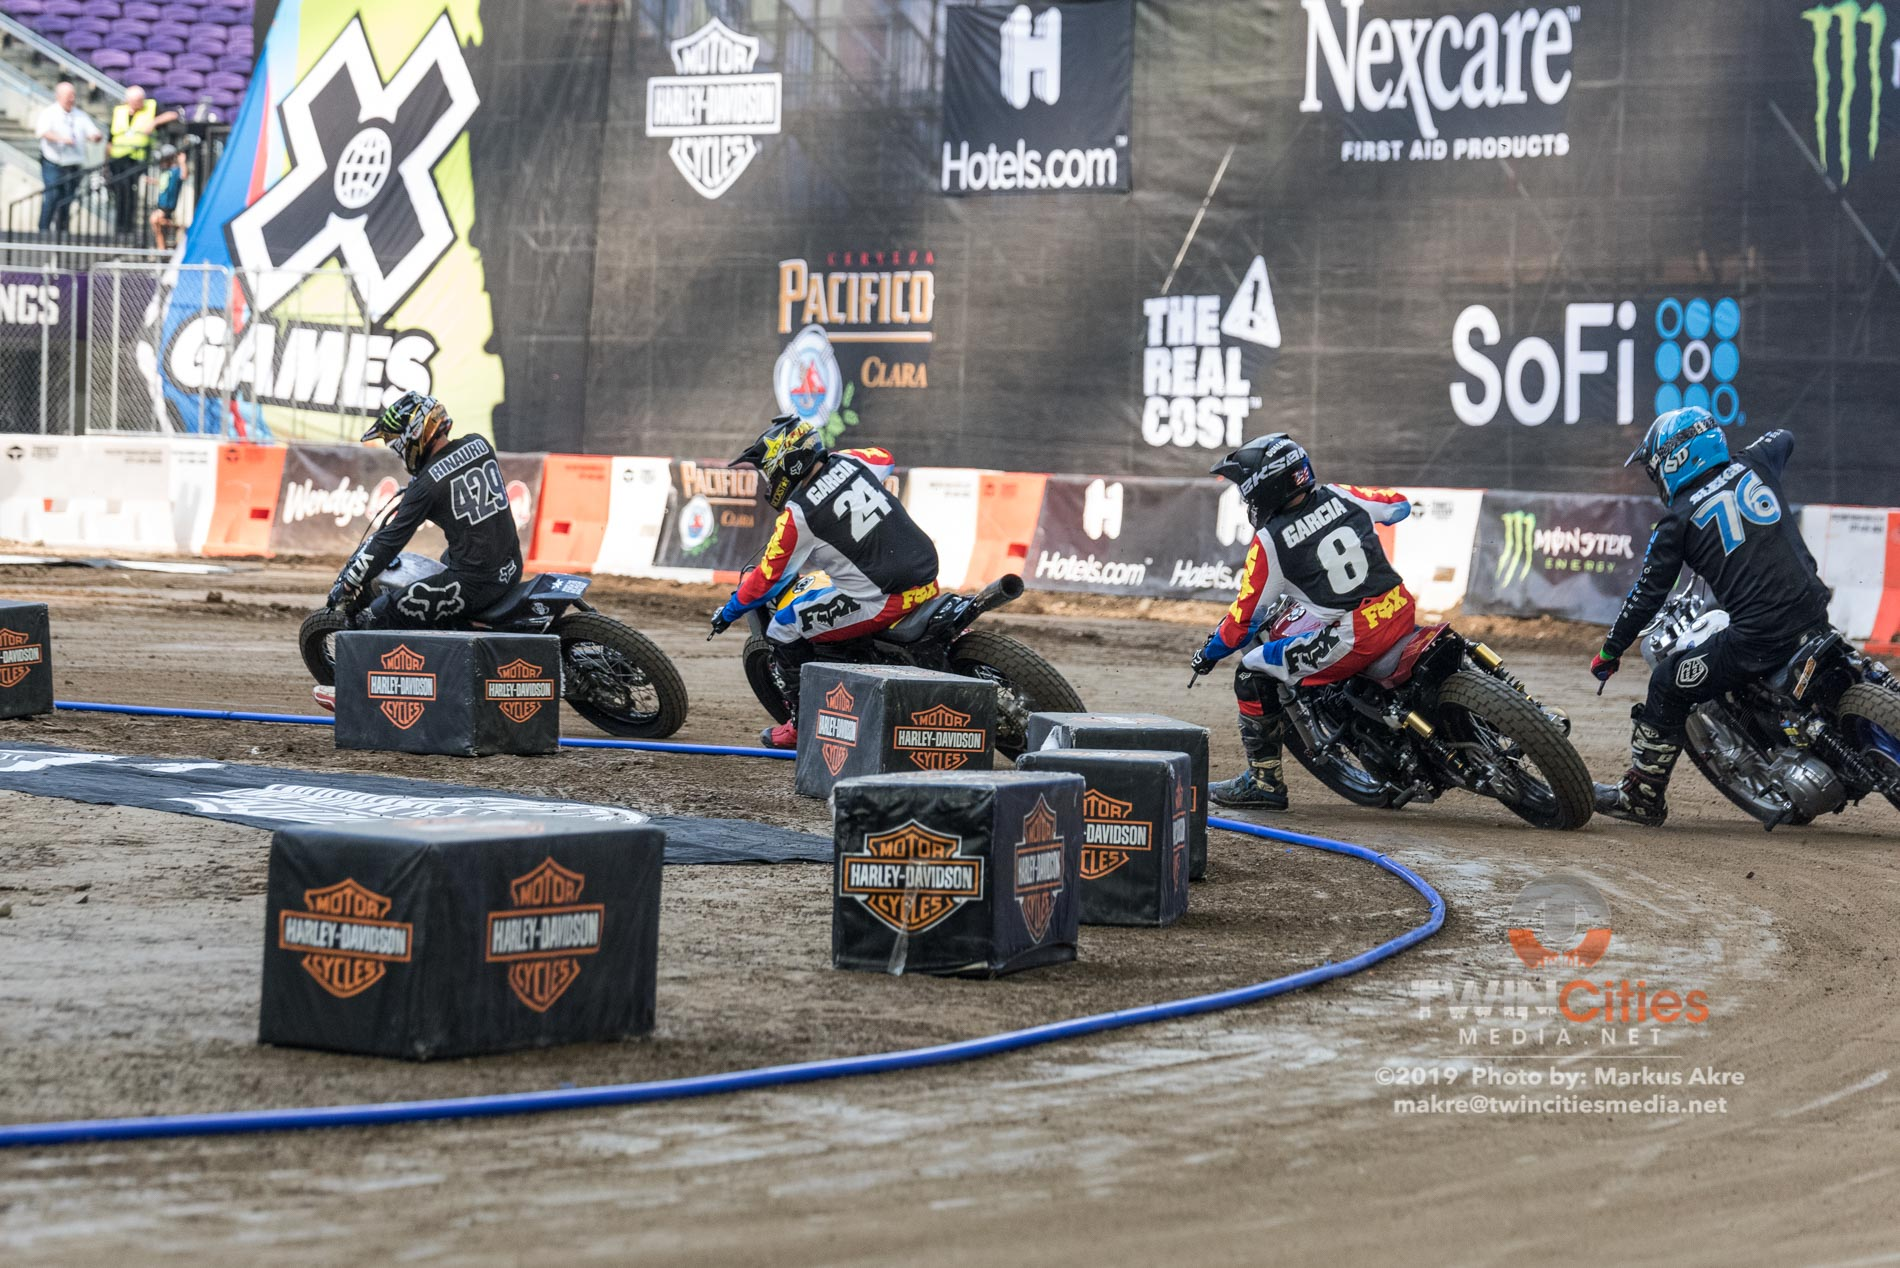 2019-X-Games-Day-4-Harley-Davidson-Hooligan-Racing-5